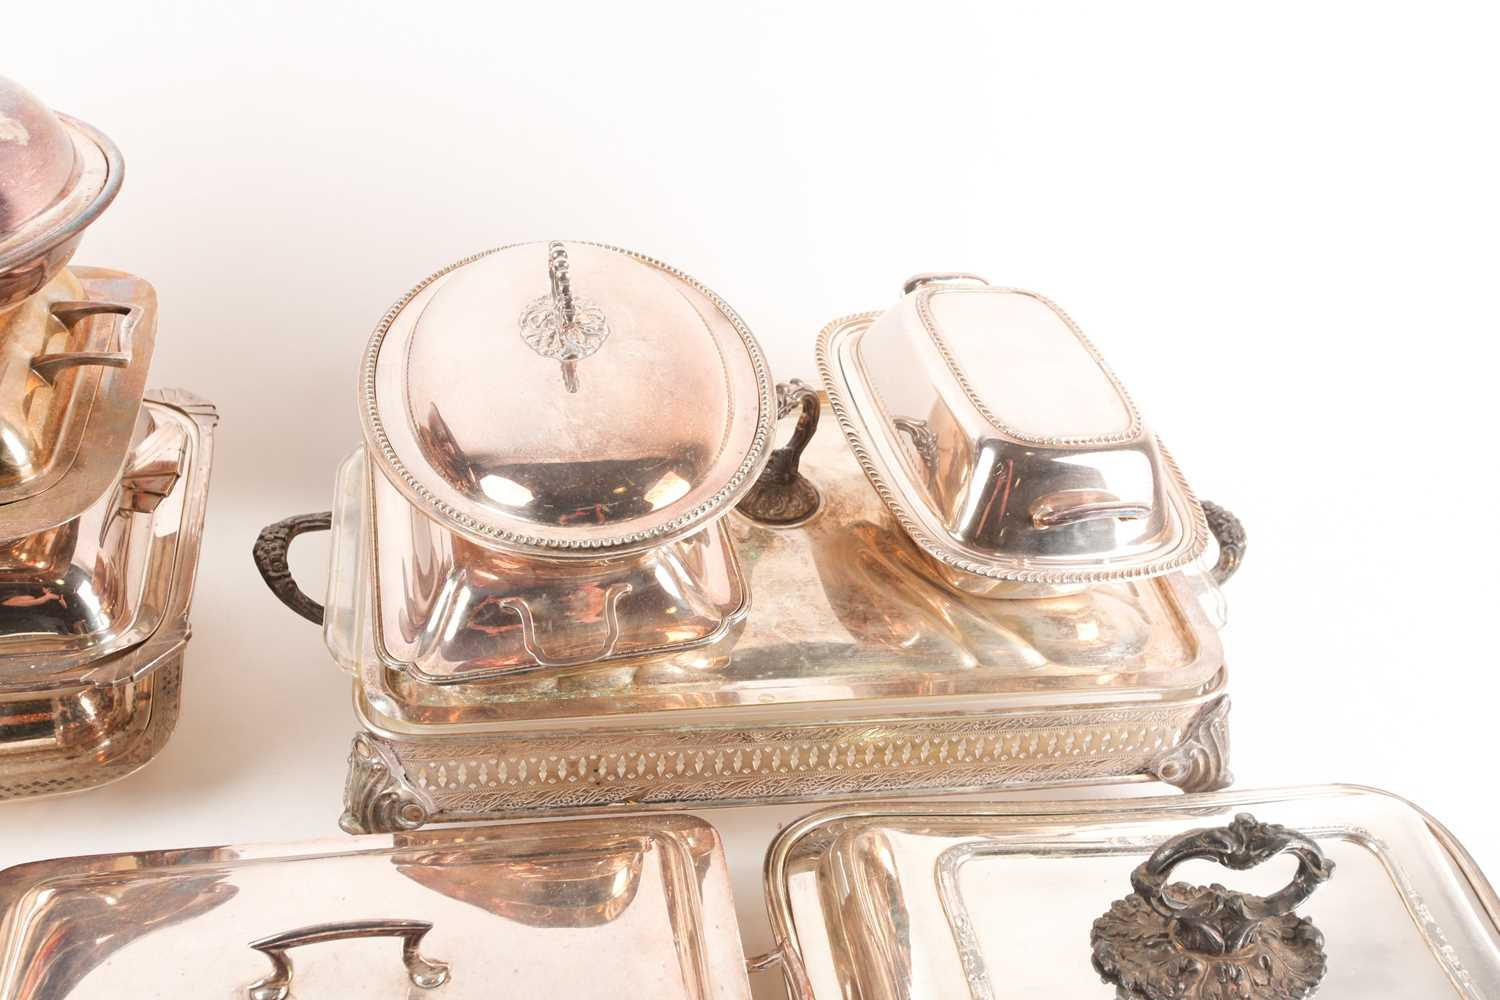 A pair of 19th century silver plated tureens and covers, the covers with shield shape cartouch - Image 3 of 5